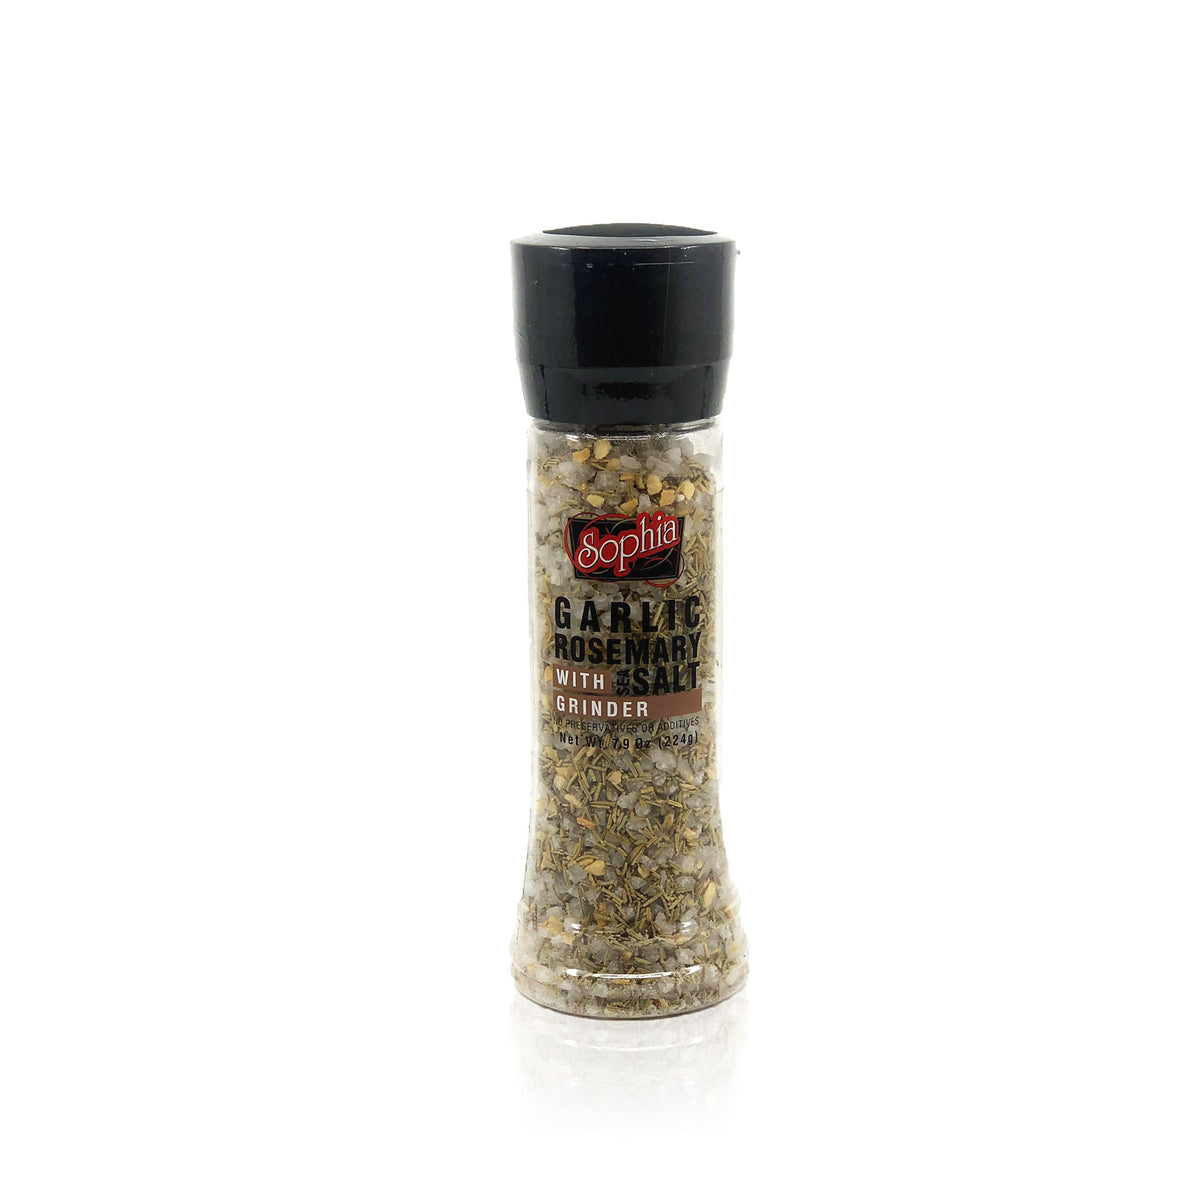 Sophia S&P Grinder-Garlic & Rosemary Salt 7.9oz